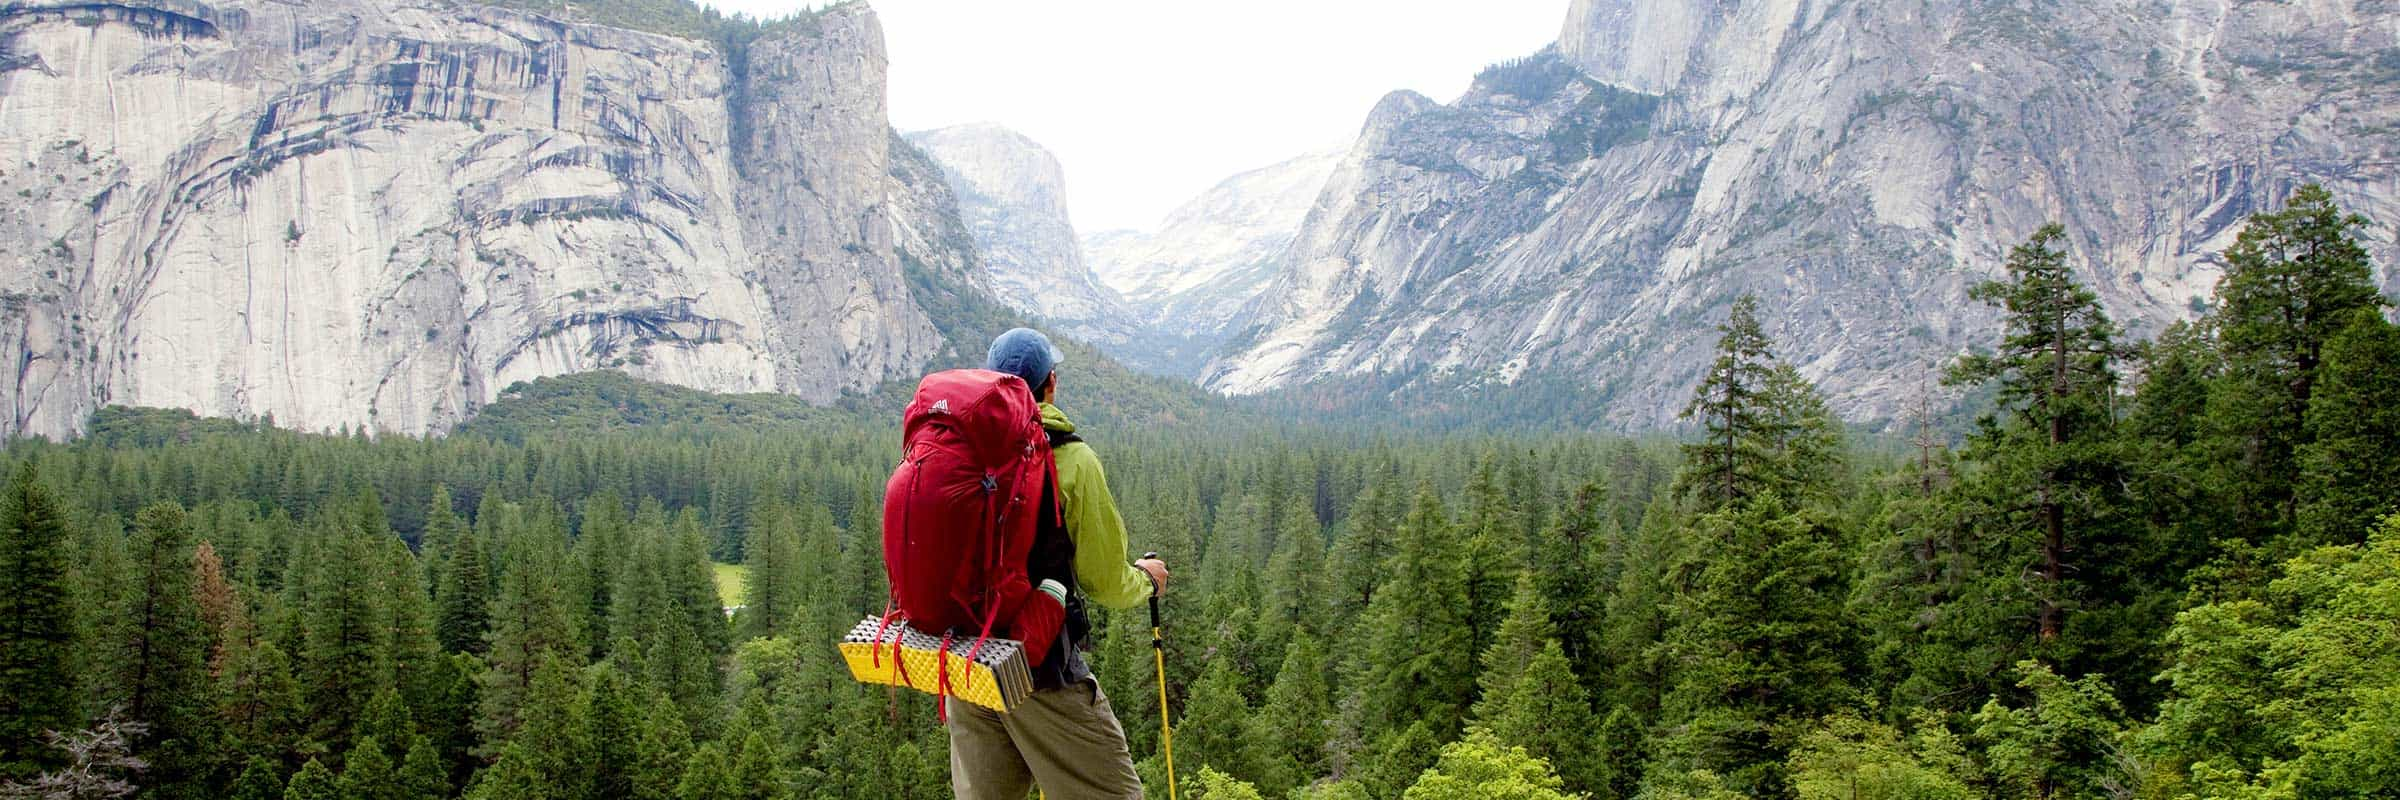 Arc'teryx, Deuter, Fjällräven, Gregory, Hydrapak, Mammut, Osprey, Platypus, The North Face, Therm-a-Rest. How to Pick a Hiking Backpack